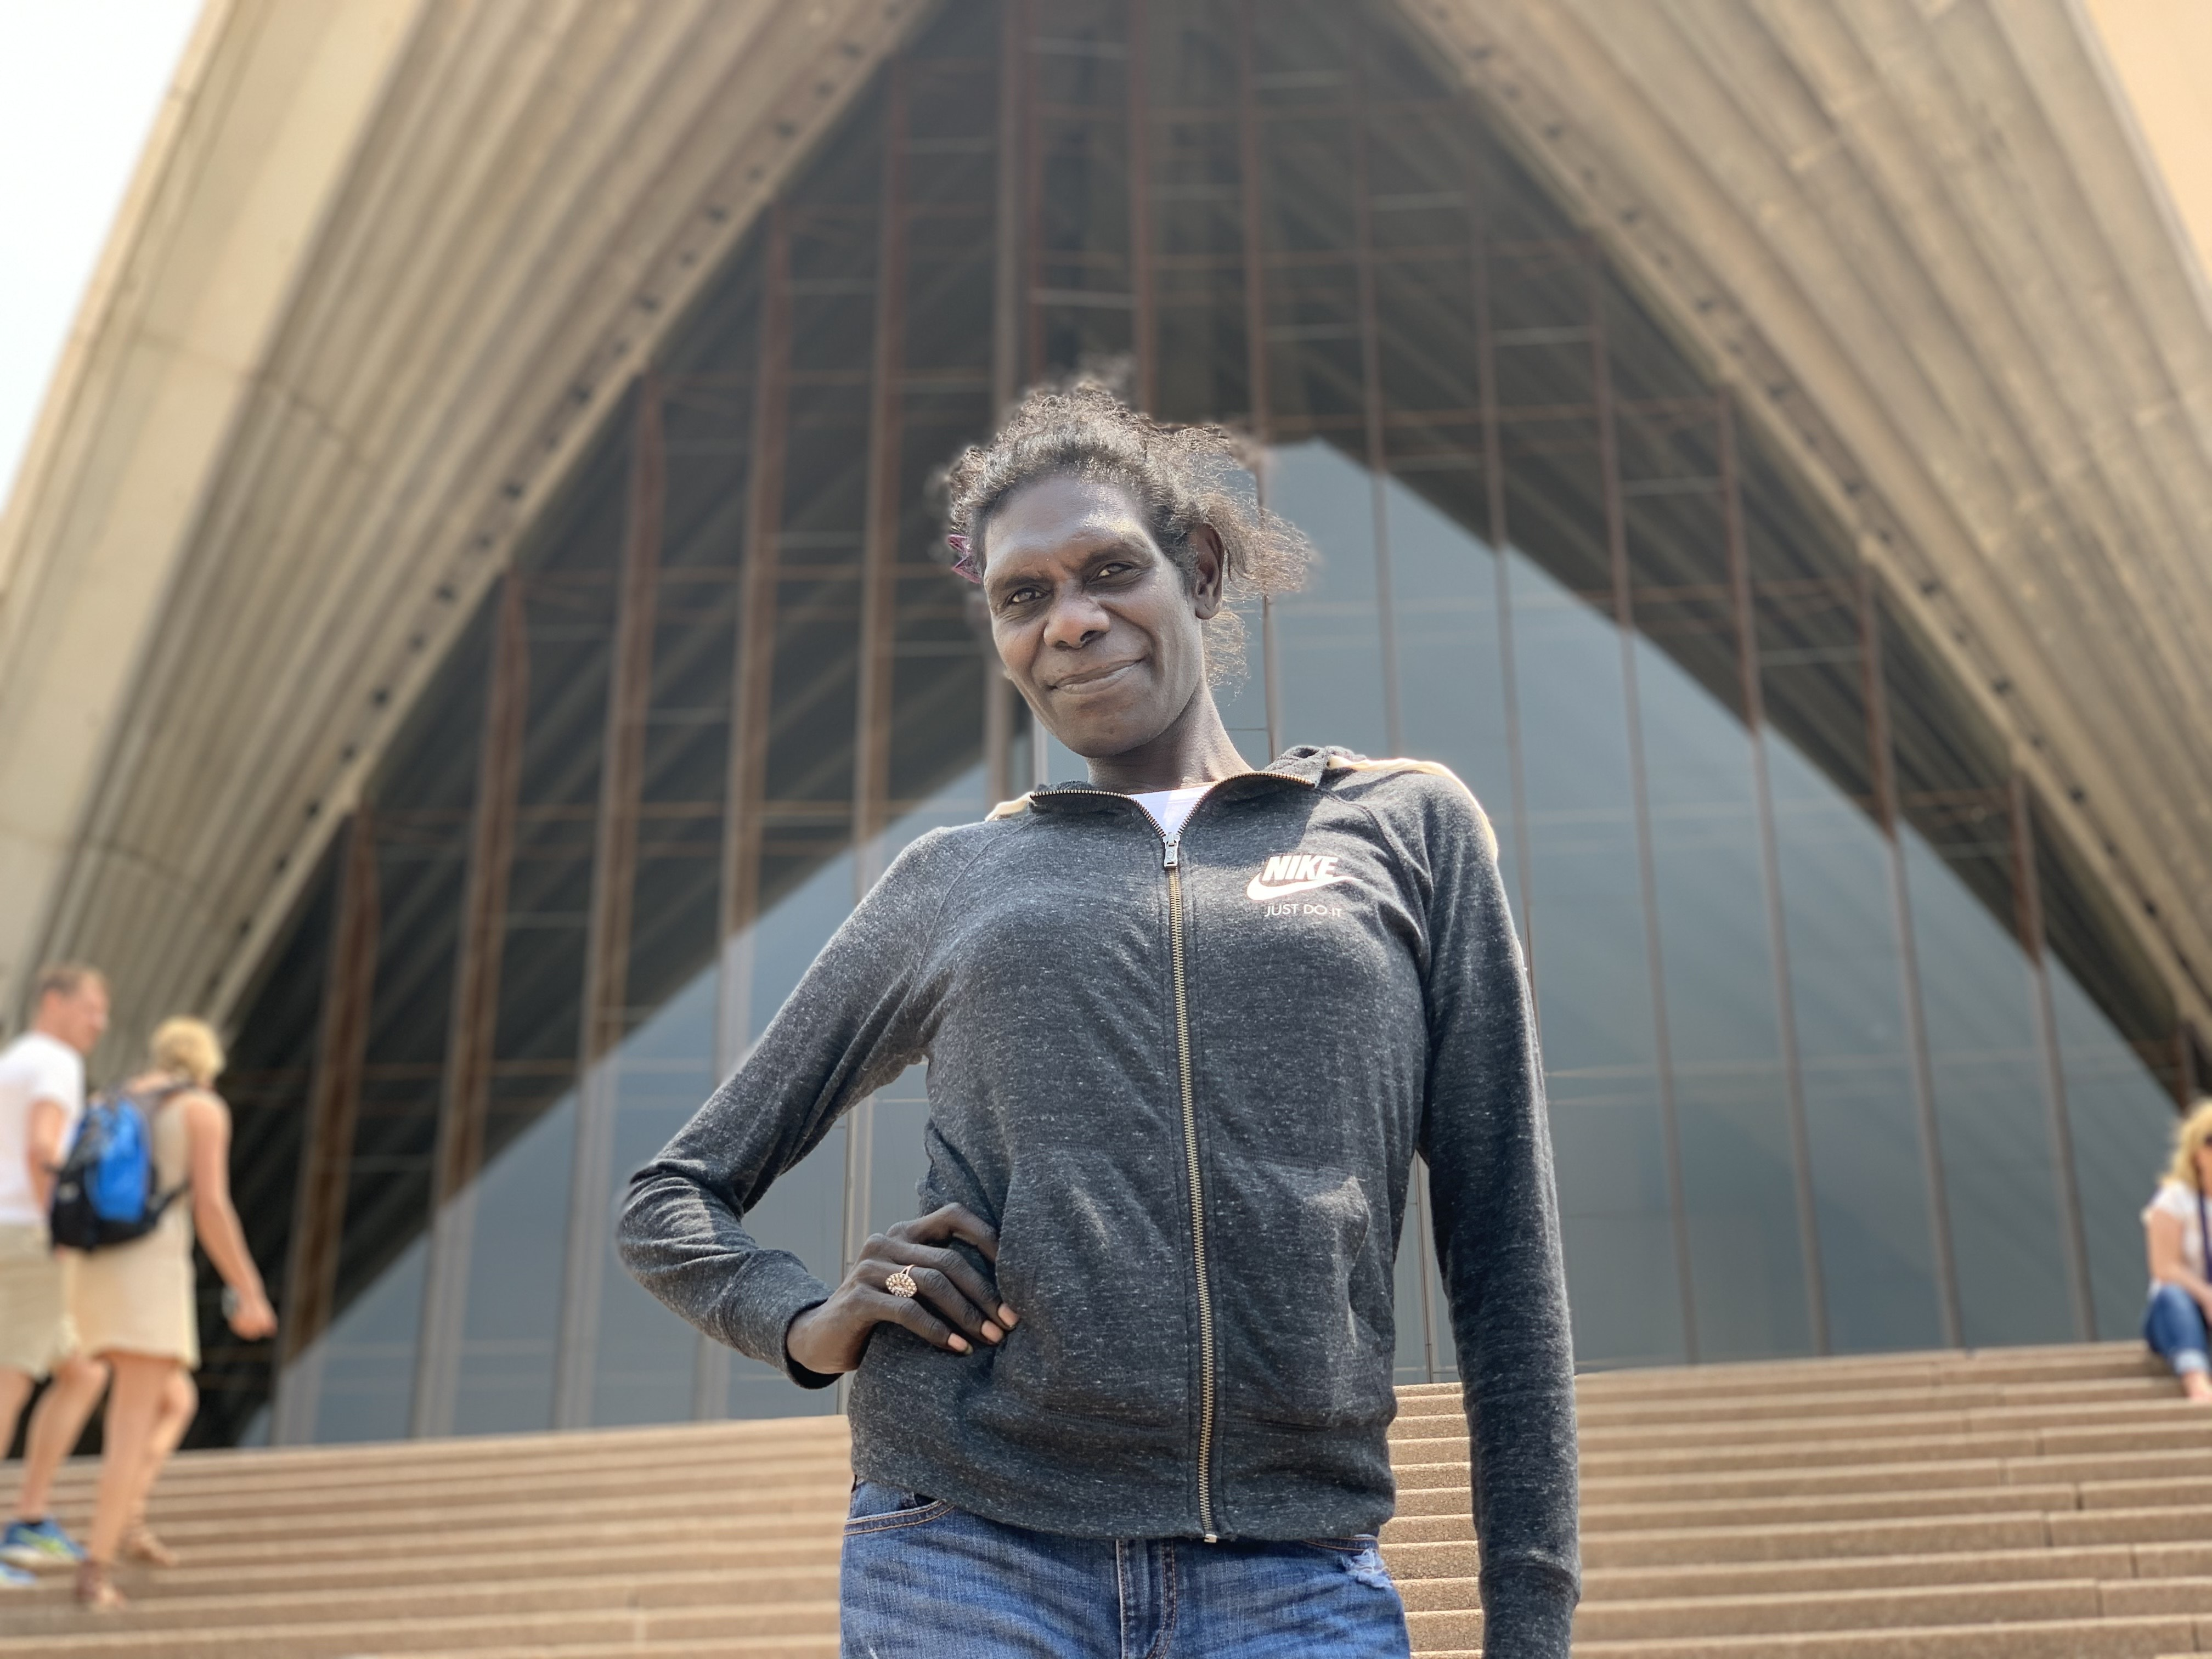 Laura Orsto strikes a pose in front of the Sydney Opera House.